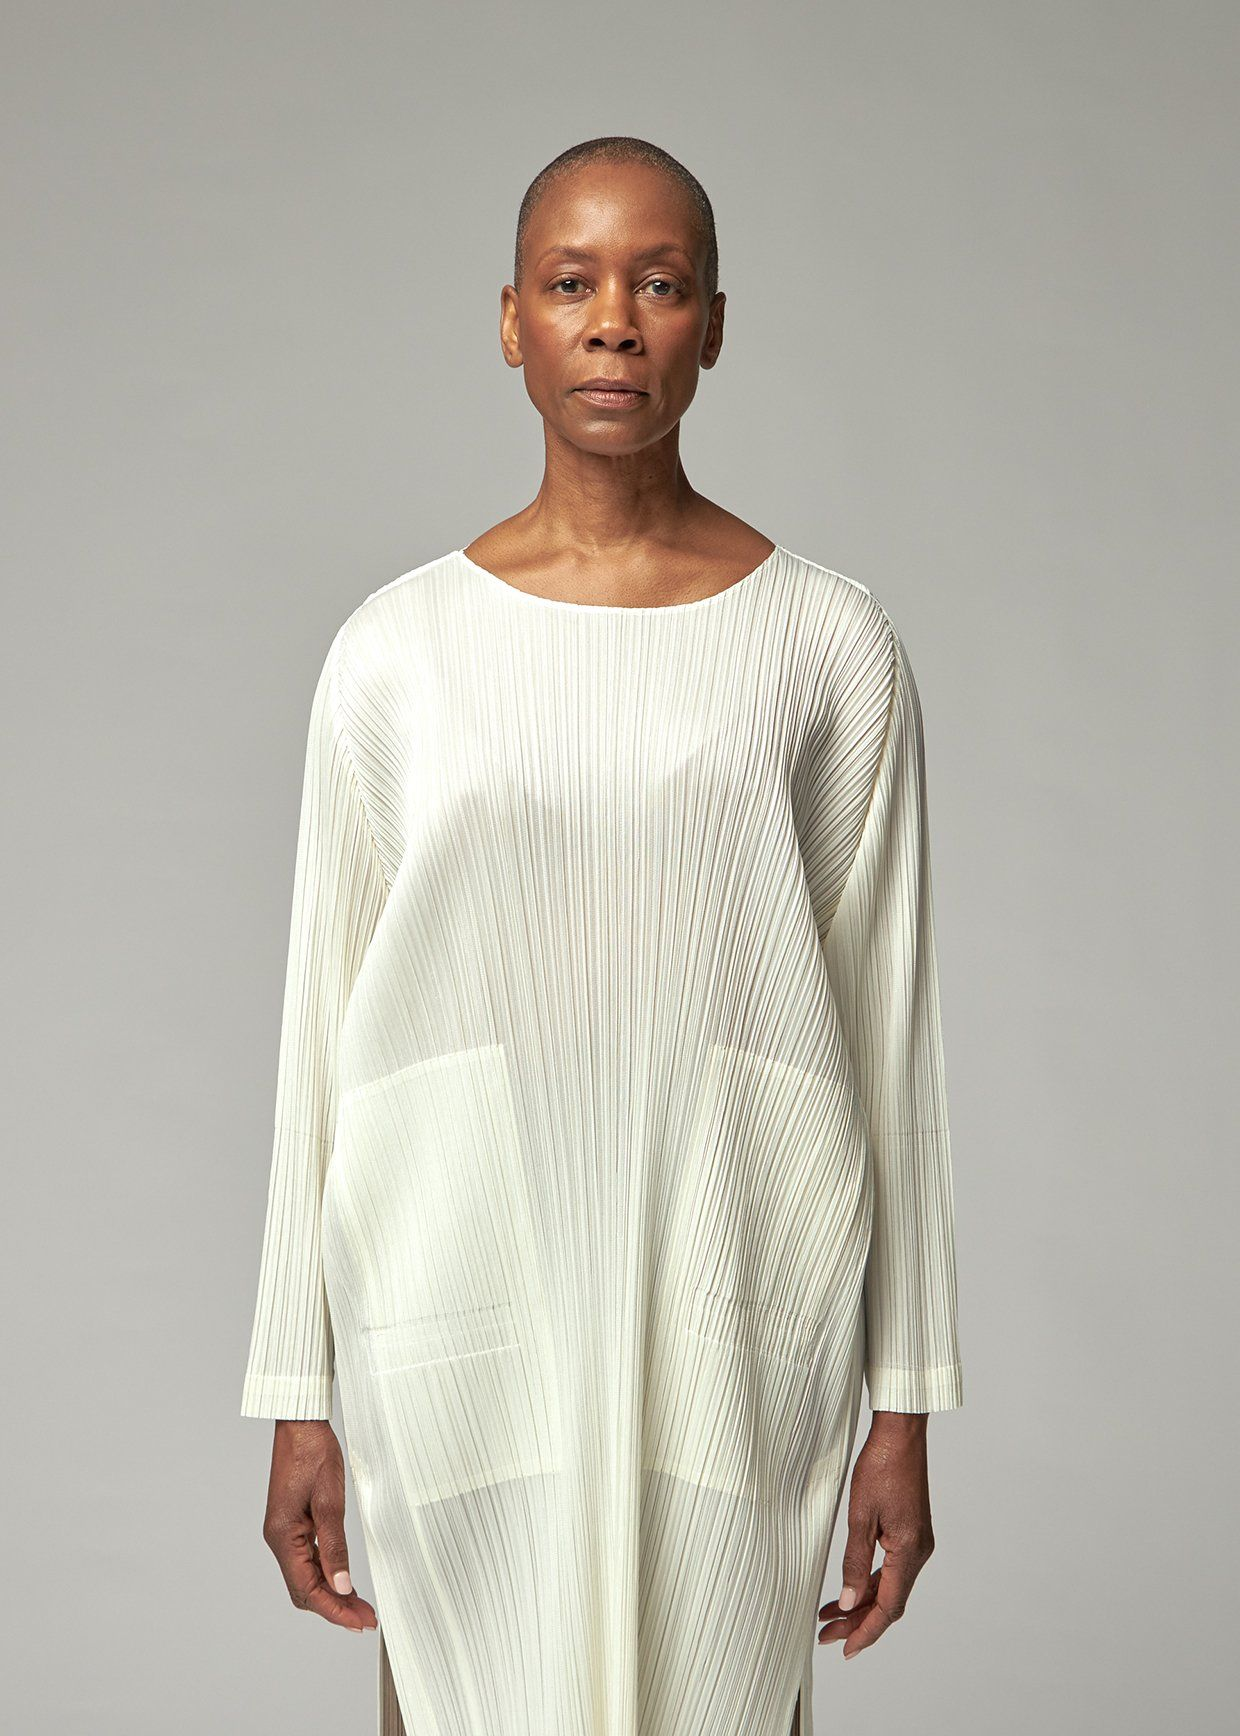 Tunic in signature lightweight vertical pleats with large, square front pockets. Long sleeves. Side slits. Machine wash cold in net. 100% polyester. Made in Japan. | PLEATS PLEASE ISSEY MIYAKE Women's Long Sleeve Tunic Top in Off White Size 3